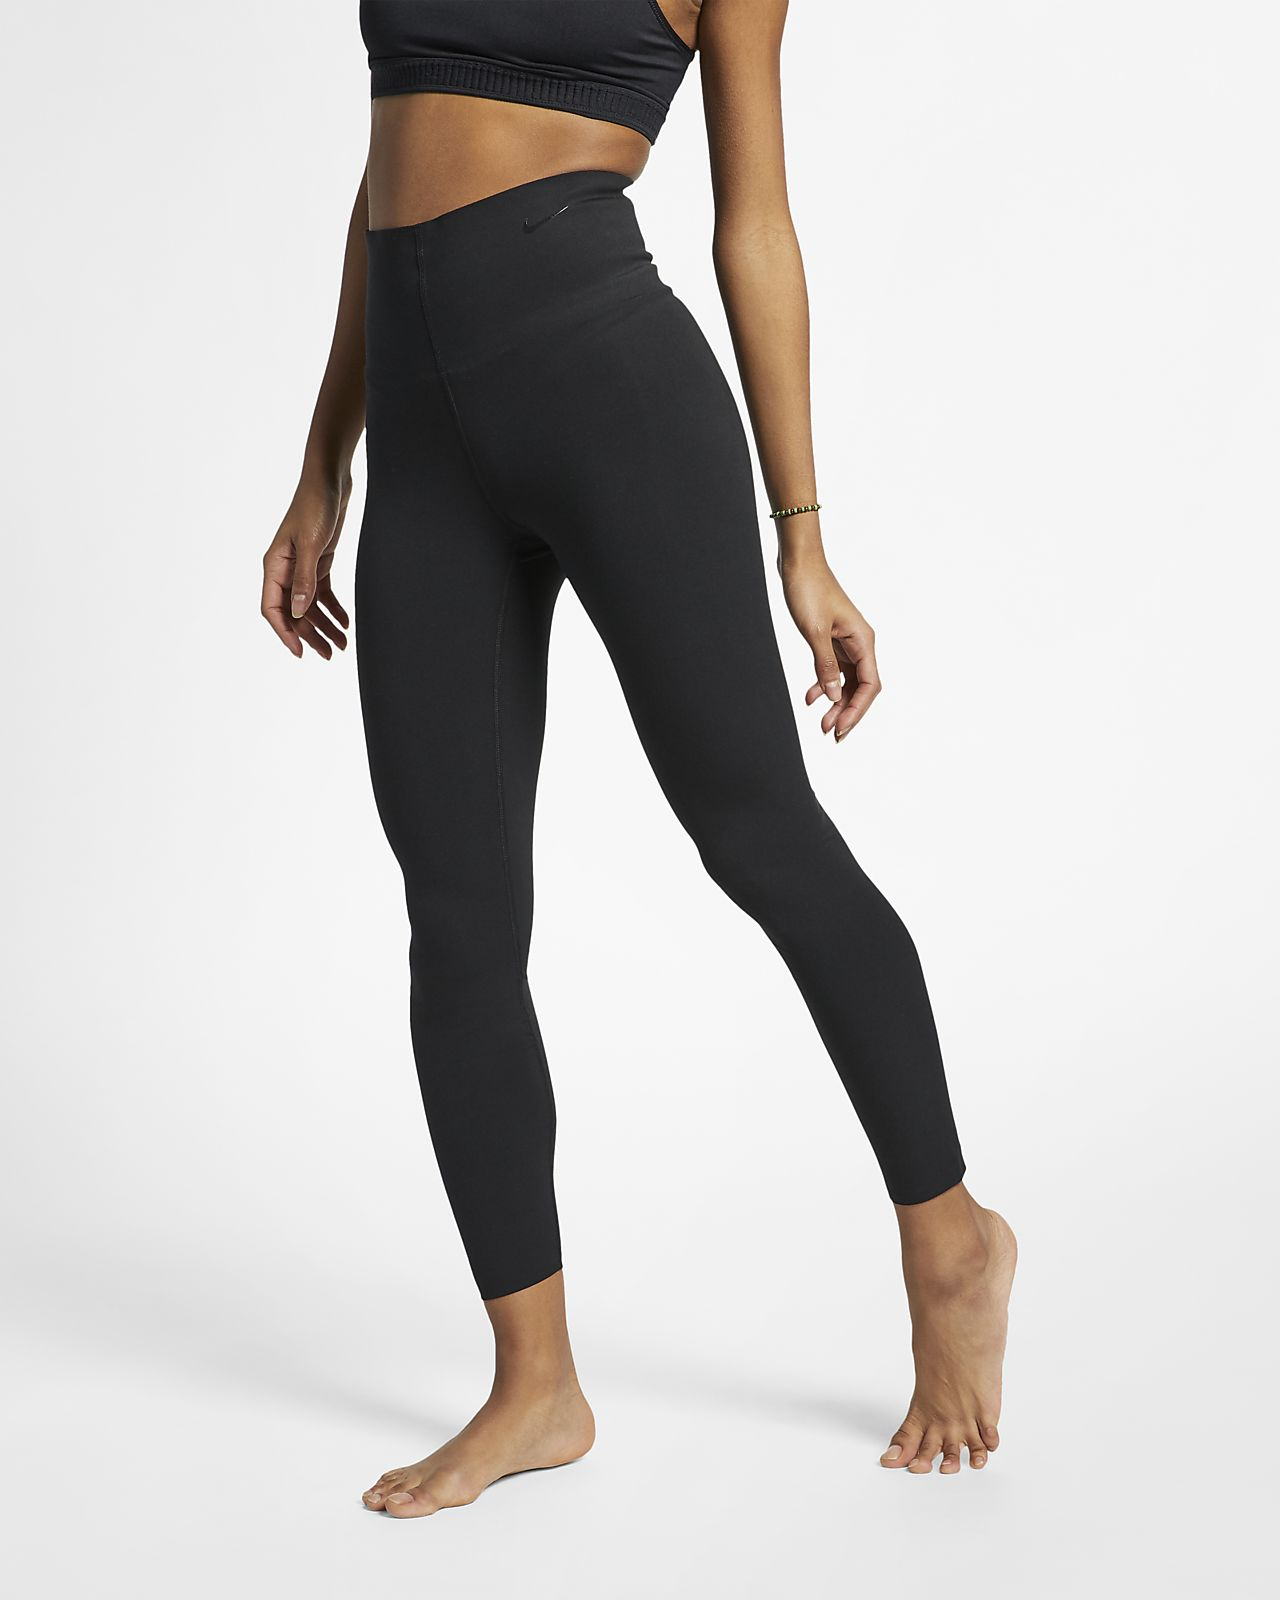 Nike Sculpt Lux Women's 7/8 Leggings